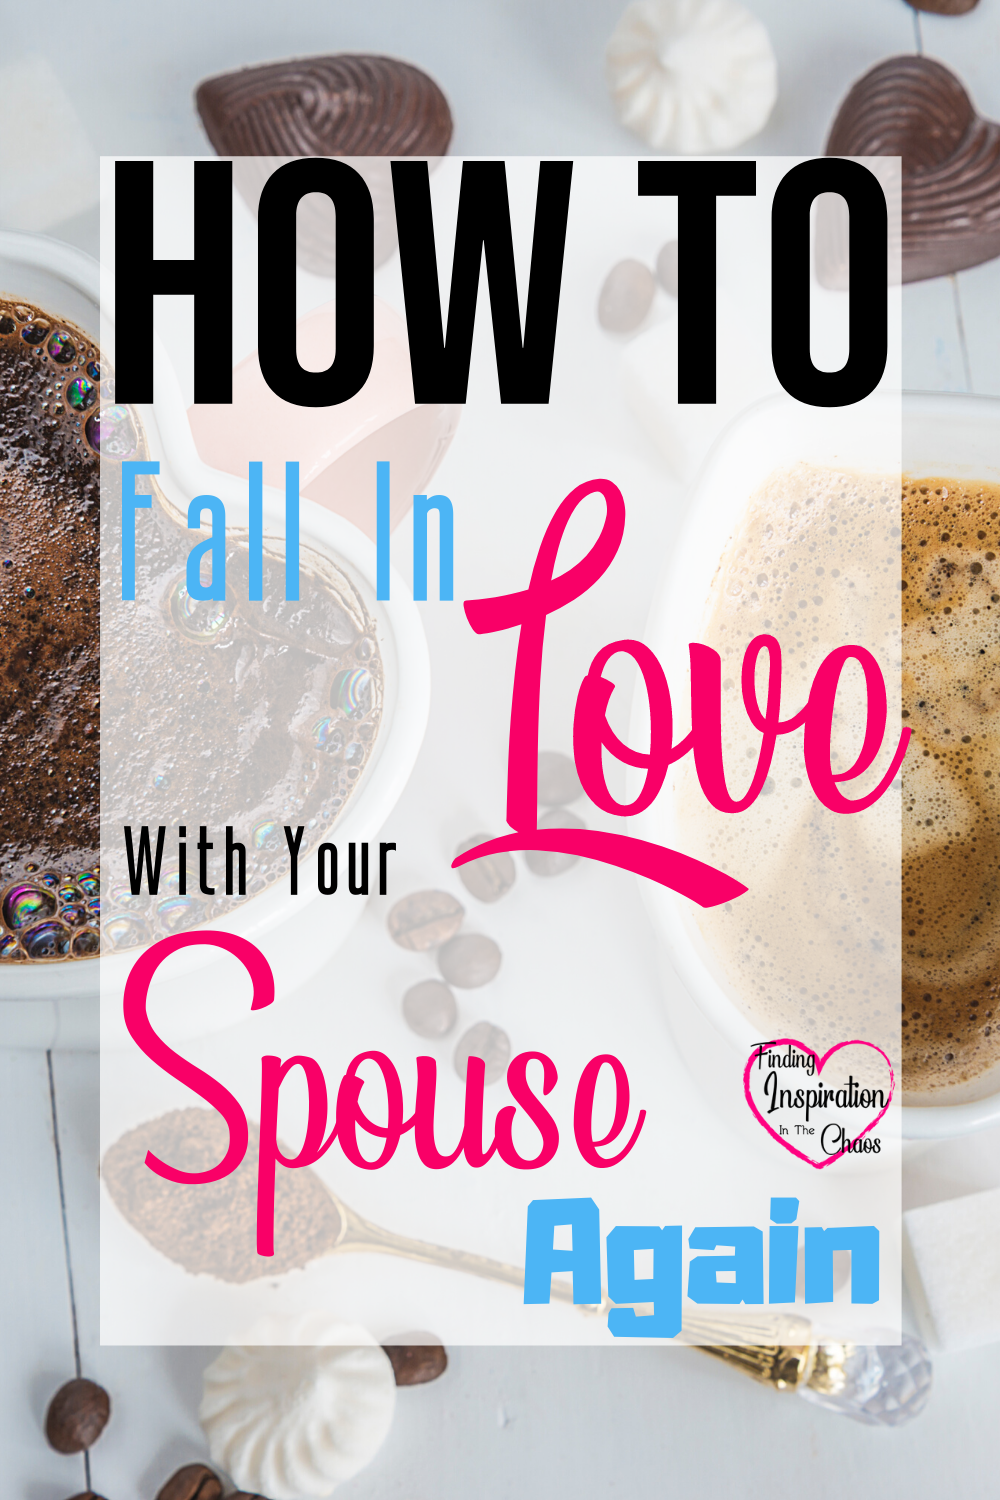 How To Fall In Love With Your Spouse Again: Life happens and sometimes you might find yourself wondering why did I marry my spouse? #marriage #divorce #relationships #love #romance #reconnectwithyourspouse #parents #communication #findinginspirationinthechaos @lanapummill